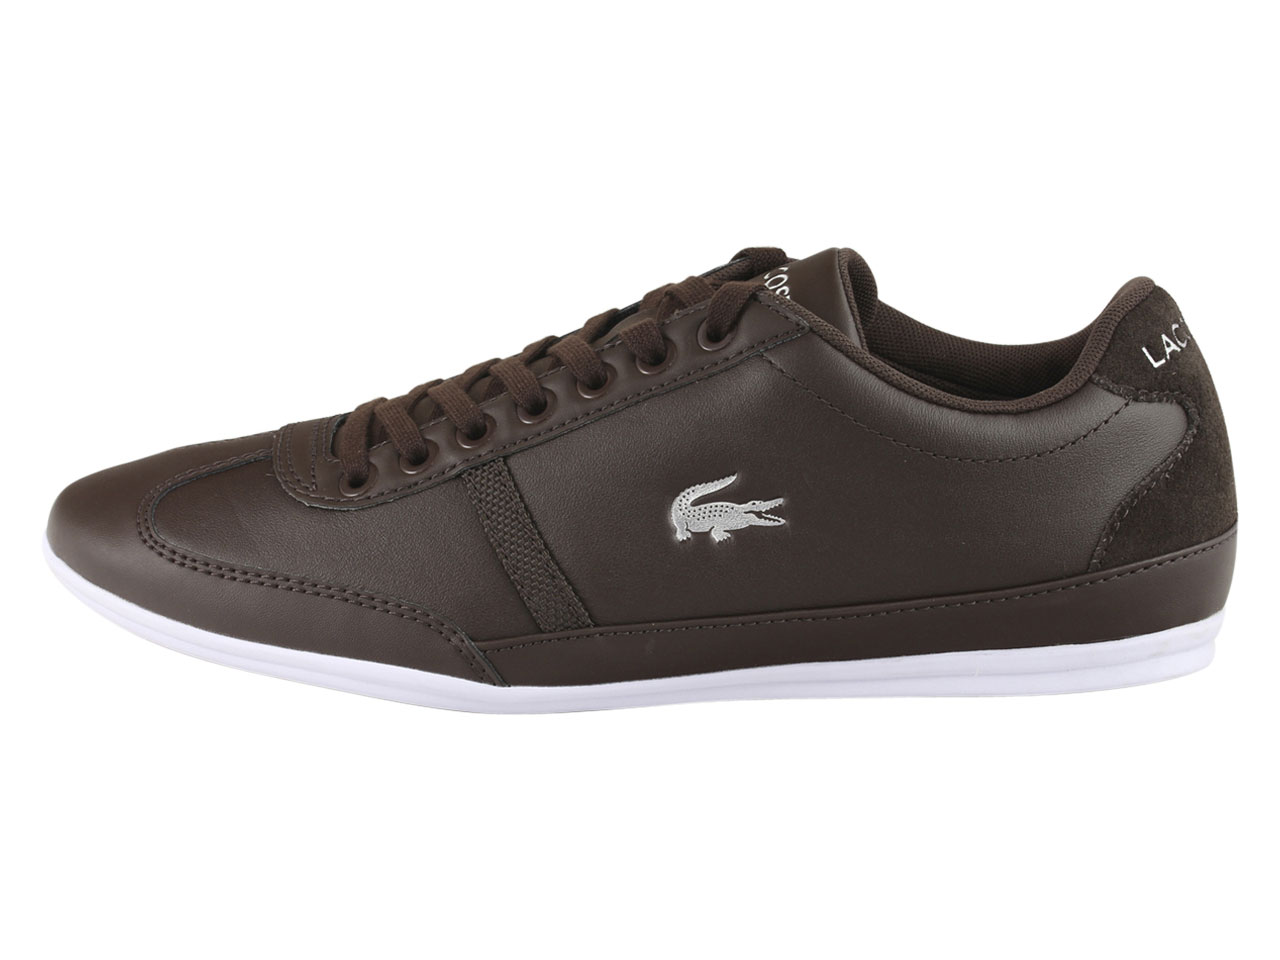 Lacoste-Men-039-s-Misano-Sport-118-Sneakers-Shoes thumbnail 17